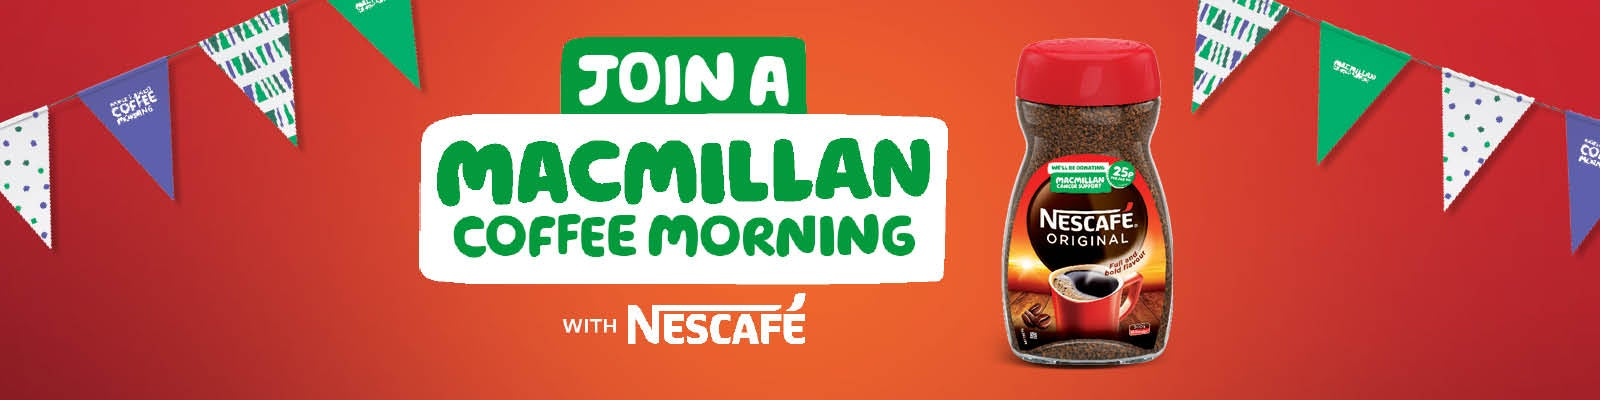 Nescafe Original Try for Free Promotion Banner